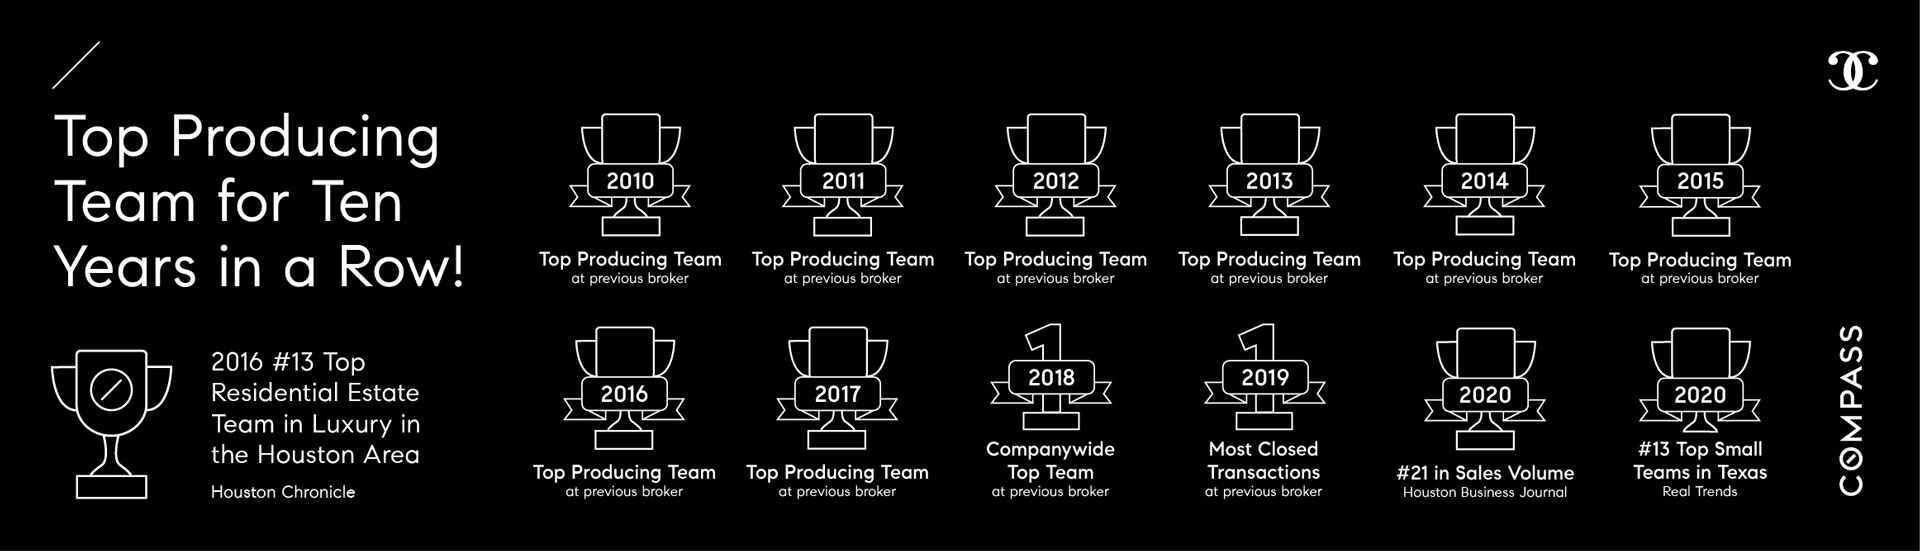 Top Producing Team for Ten Years in a Row!